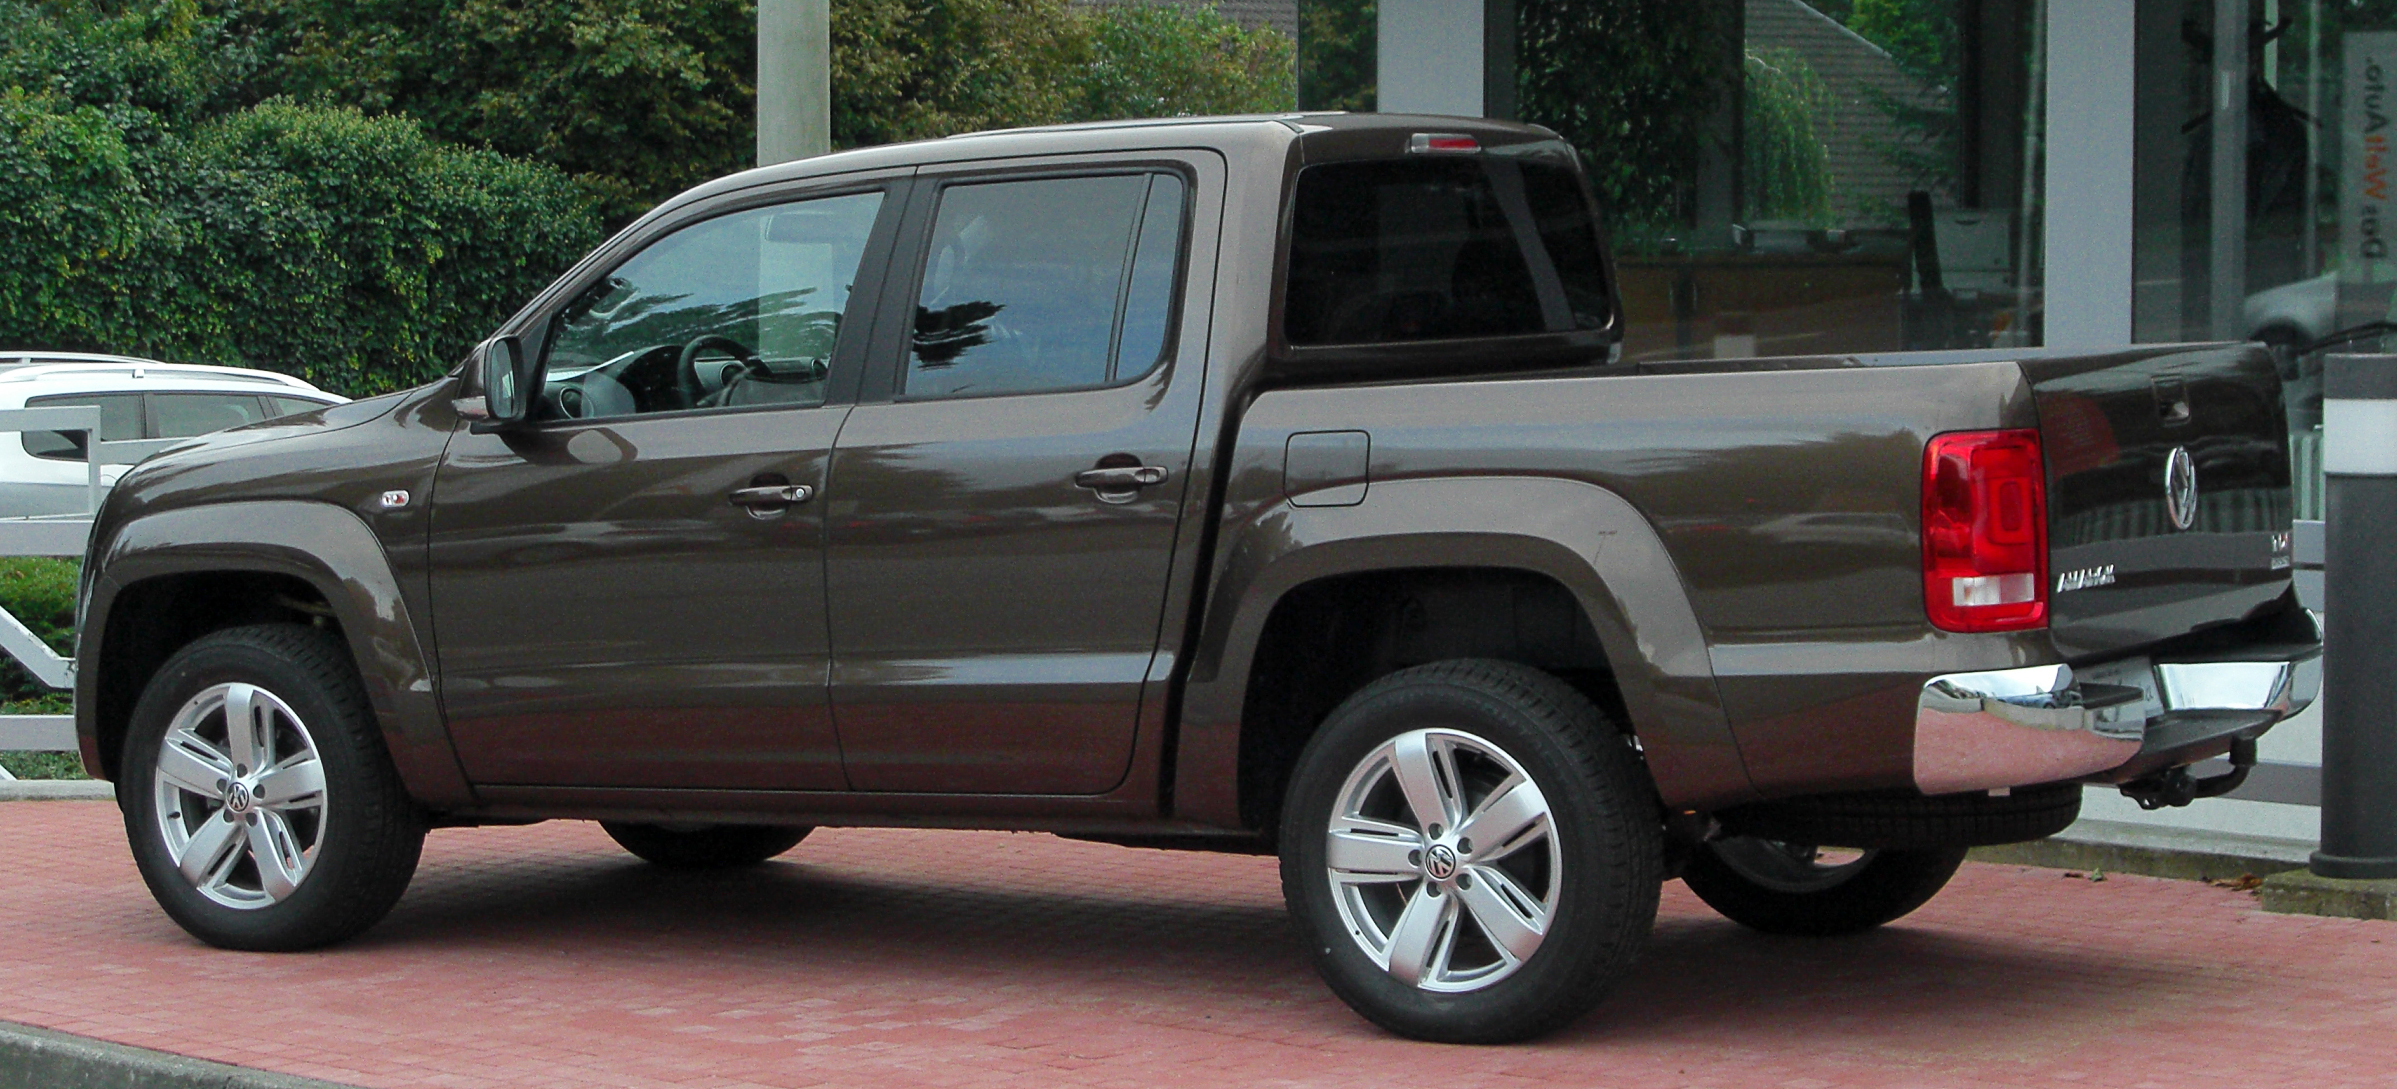 File:VW Amarok 2.0 TDI 4MOTION DC Highline rear-2 20100919 ...